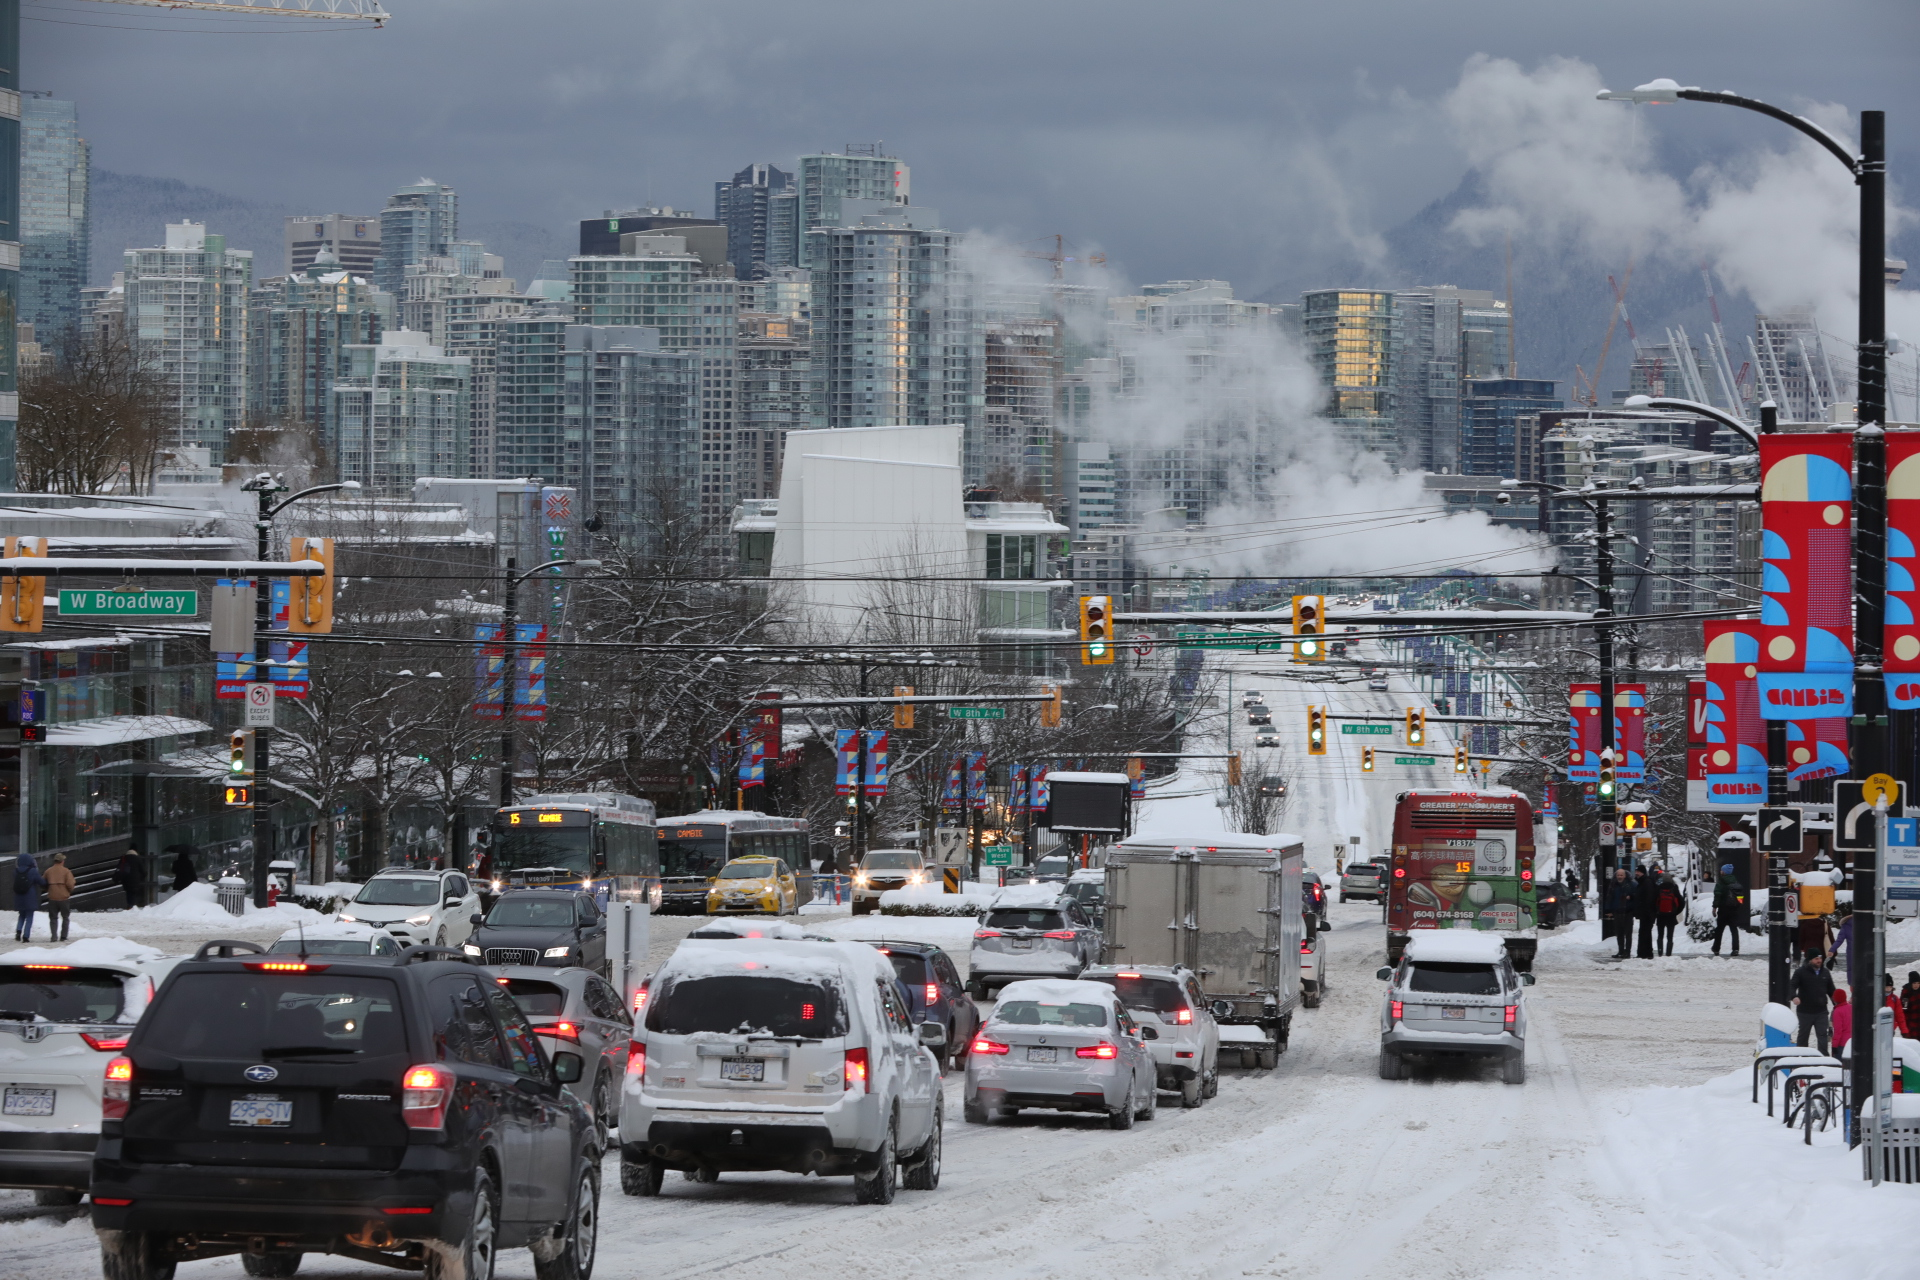 South Coast recovering from wicked weather, but still some flurries to come